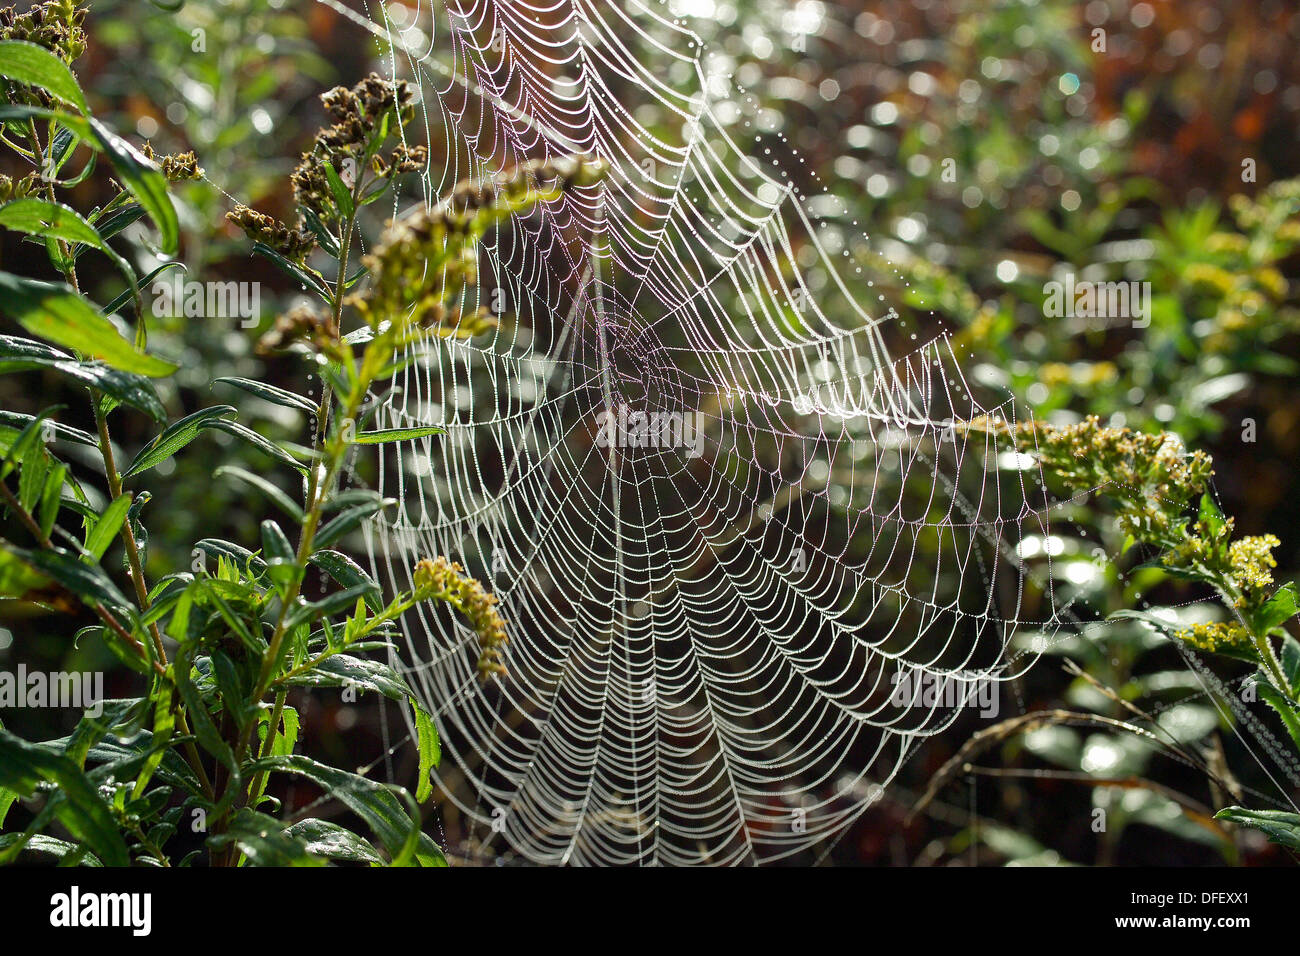 Spiderweb suspended from summer branch, Vermont - Stock Image